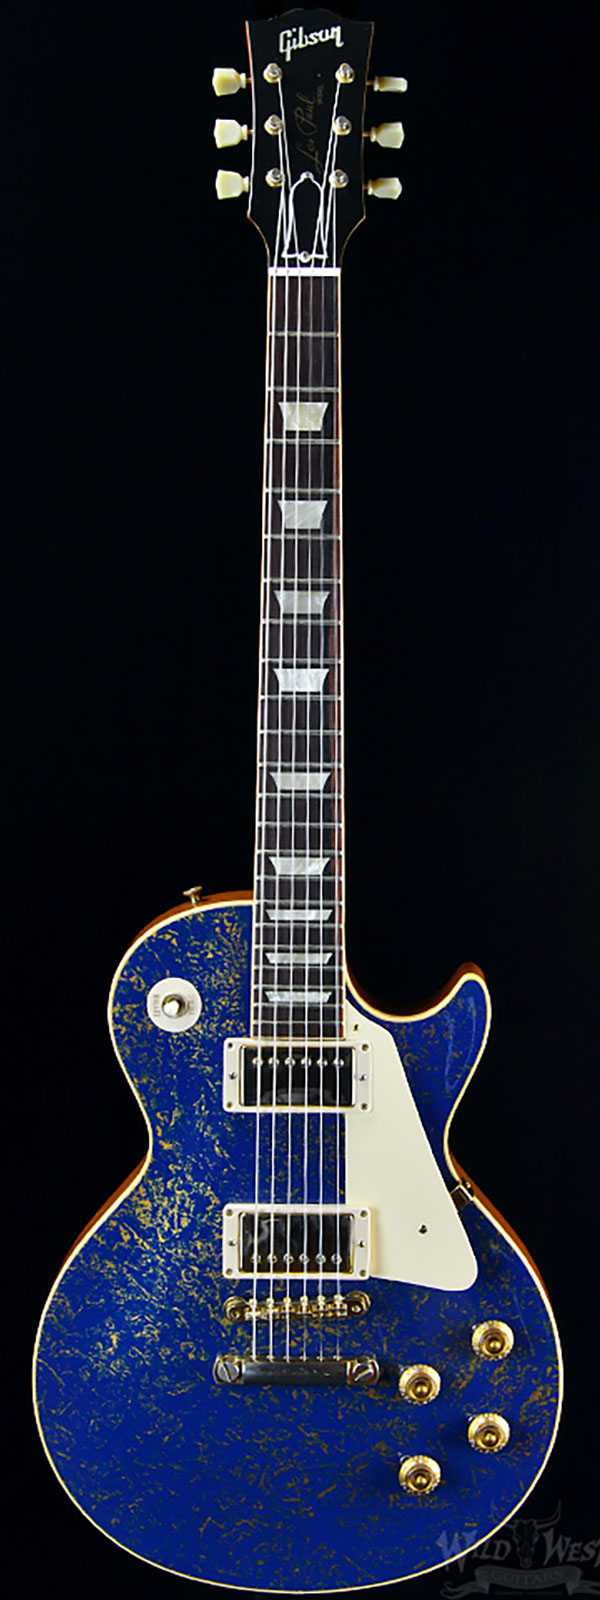 gibson les paul 1957 reissue gold blue preowned wild west guitars. Black Bedroom Furniture Sets. Home Design Ideas